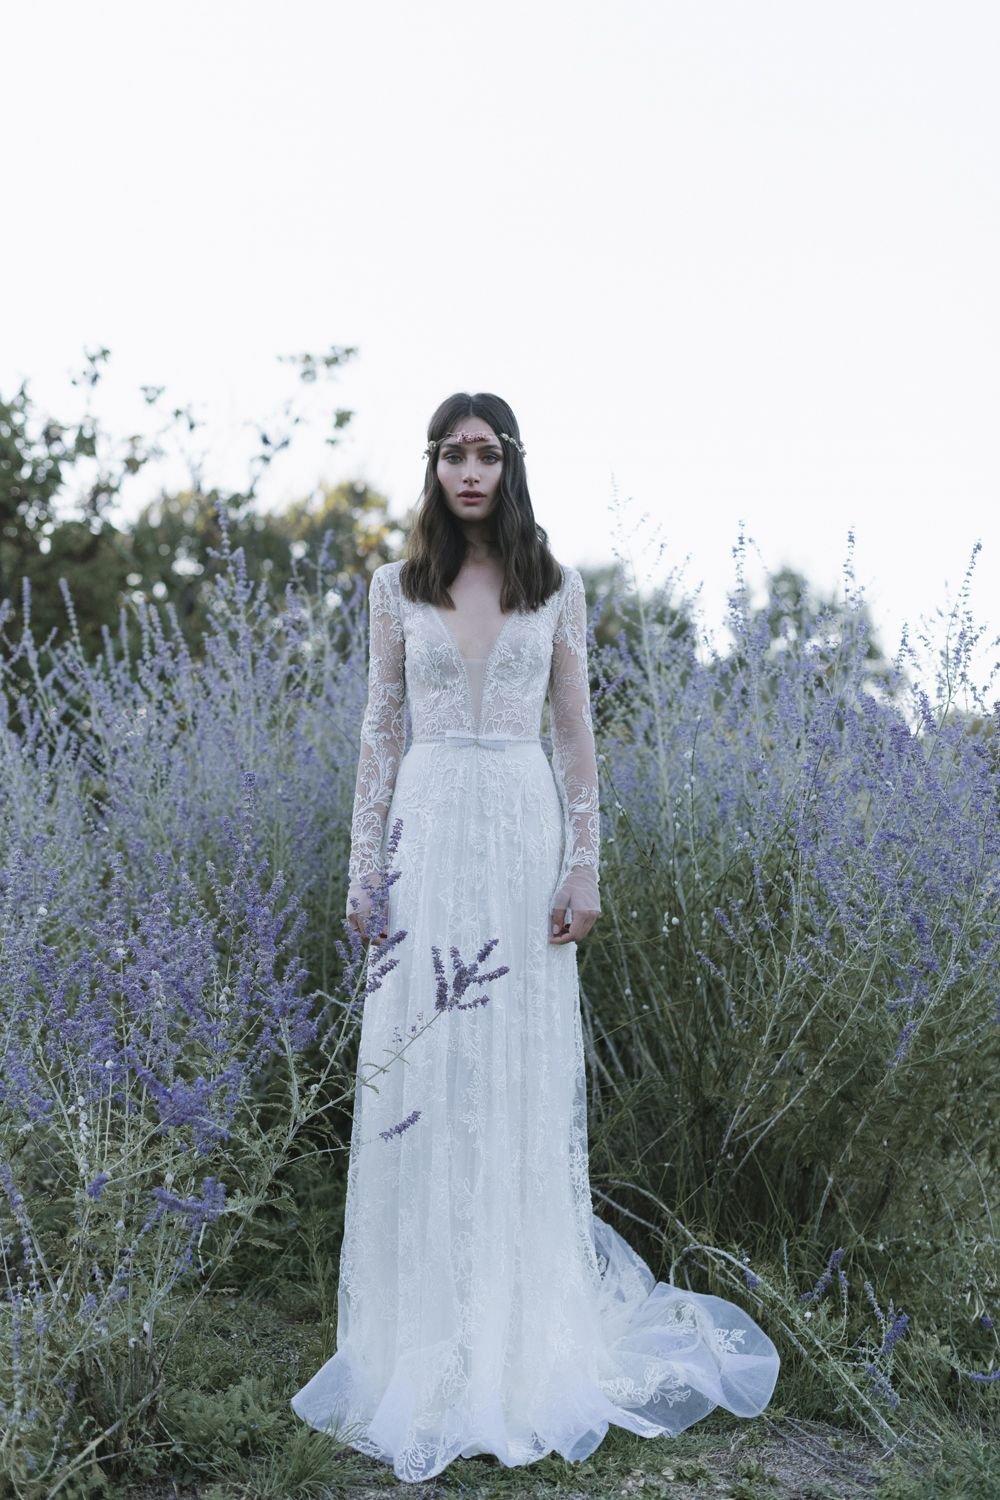 Wedding Dress Not White For Everyone